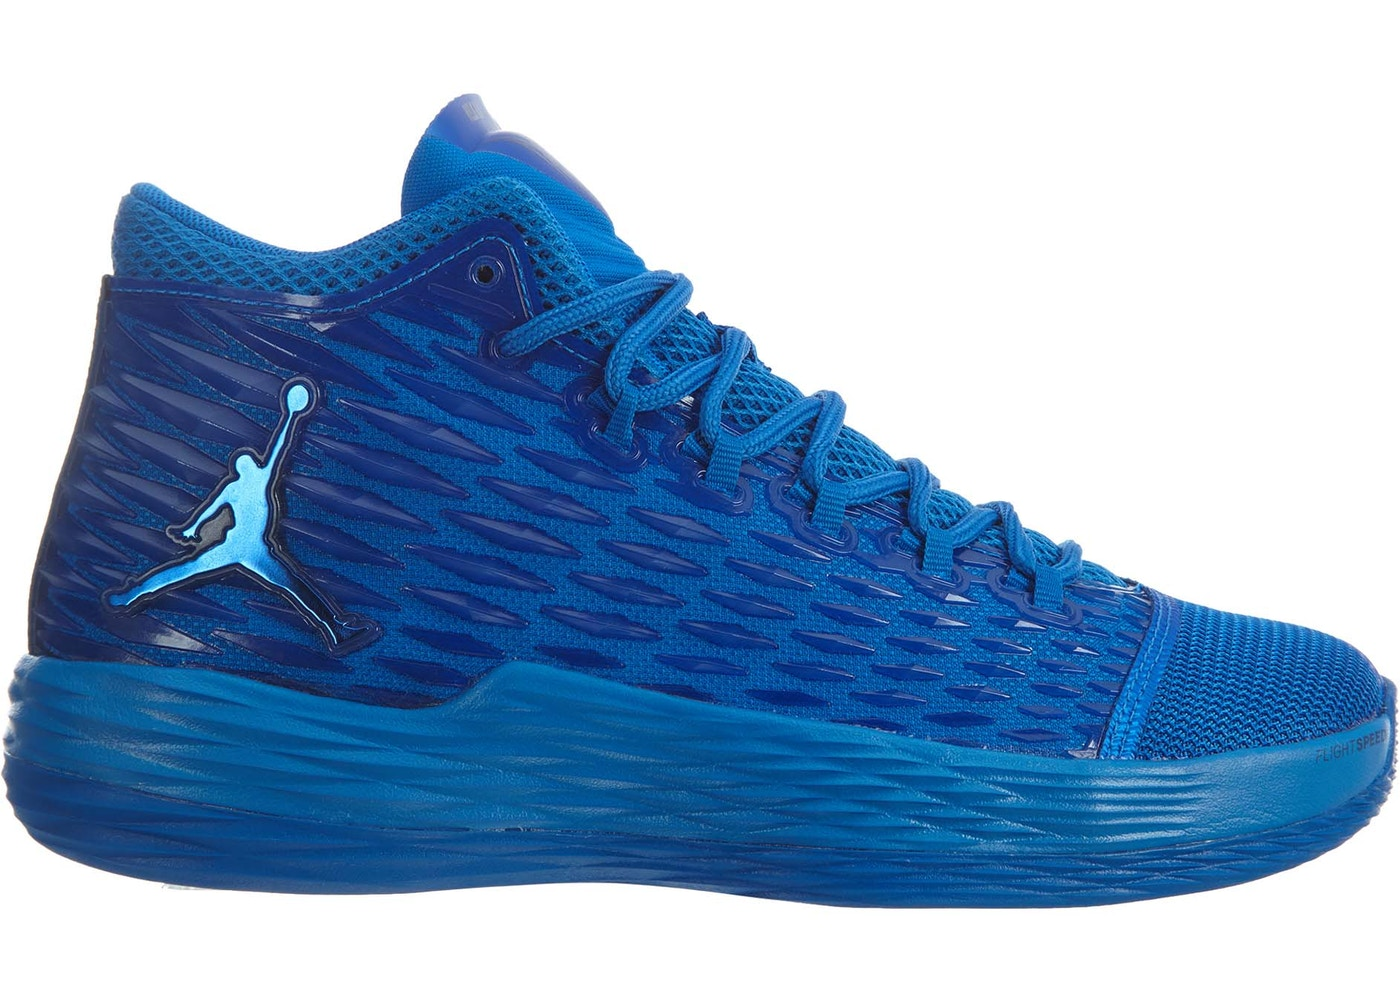 ee8f1ff33054 Jordan Melo M13 Soar Deep Royal Blue - 881562-402